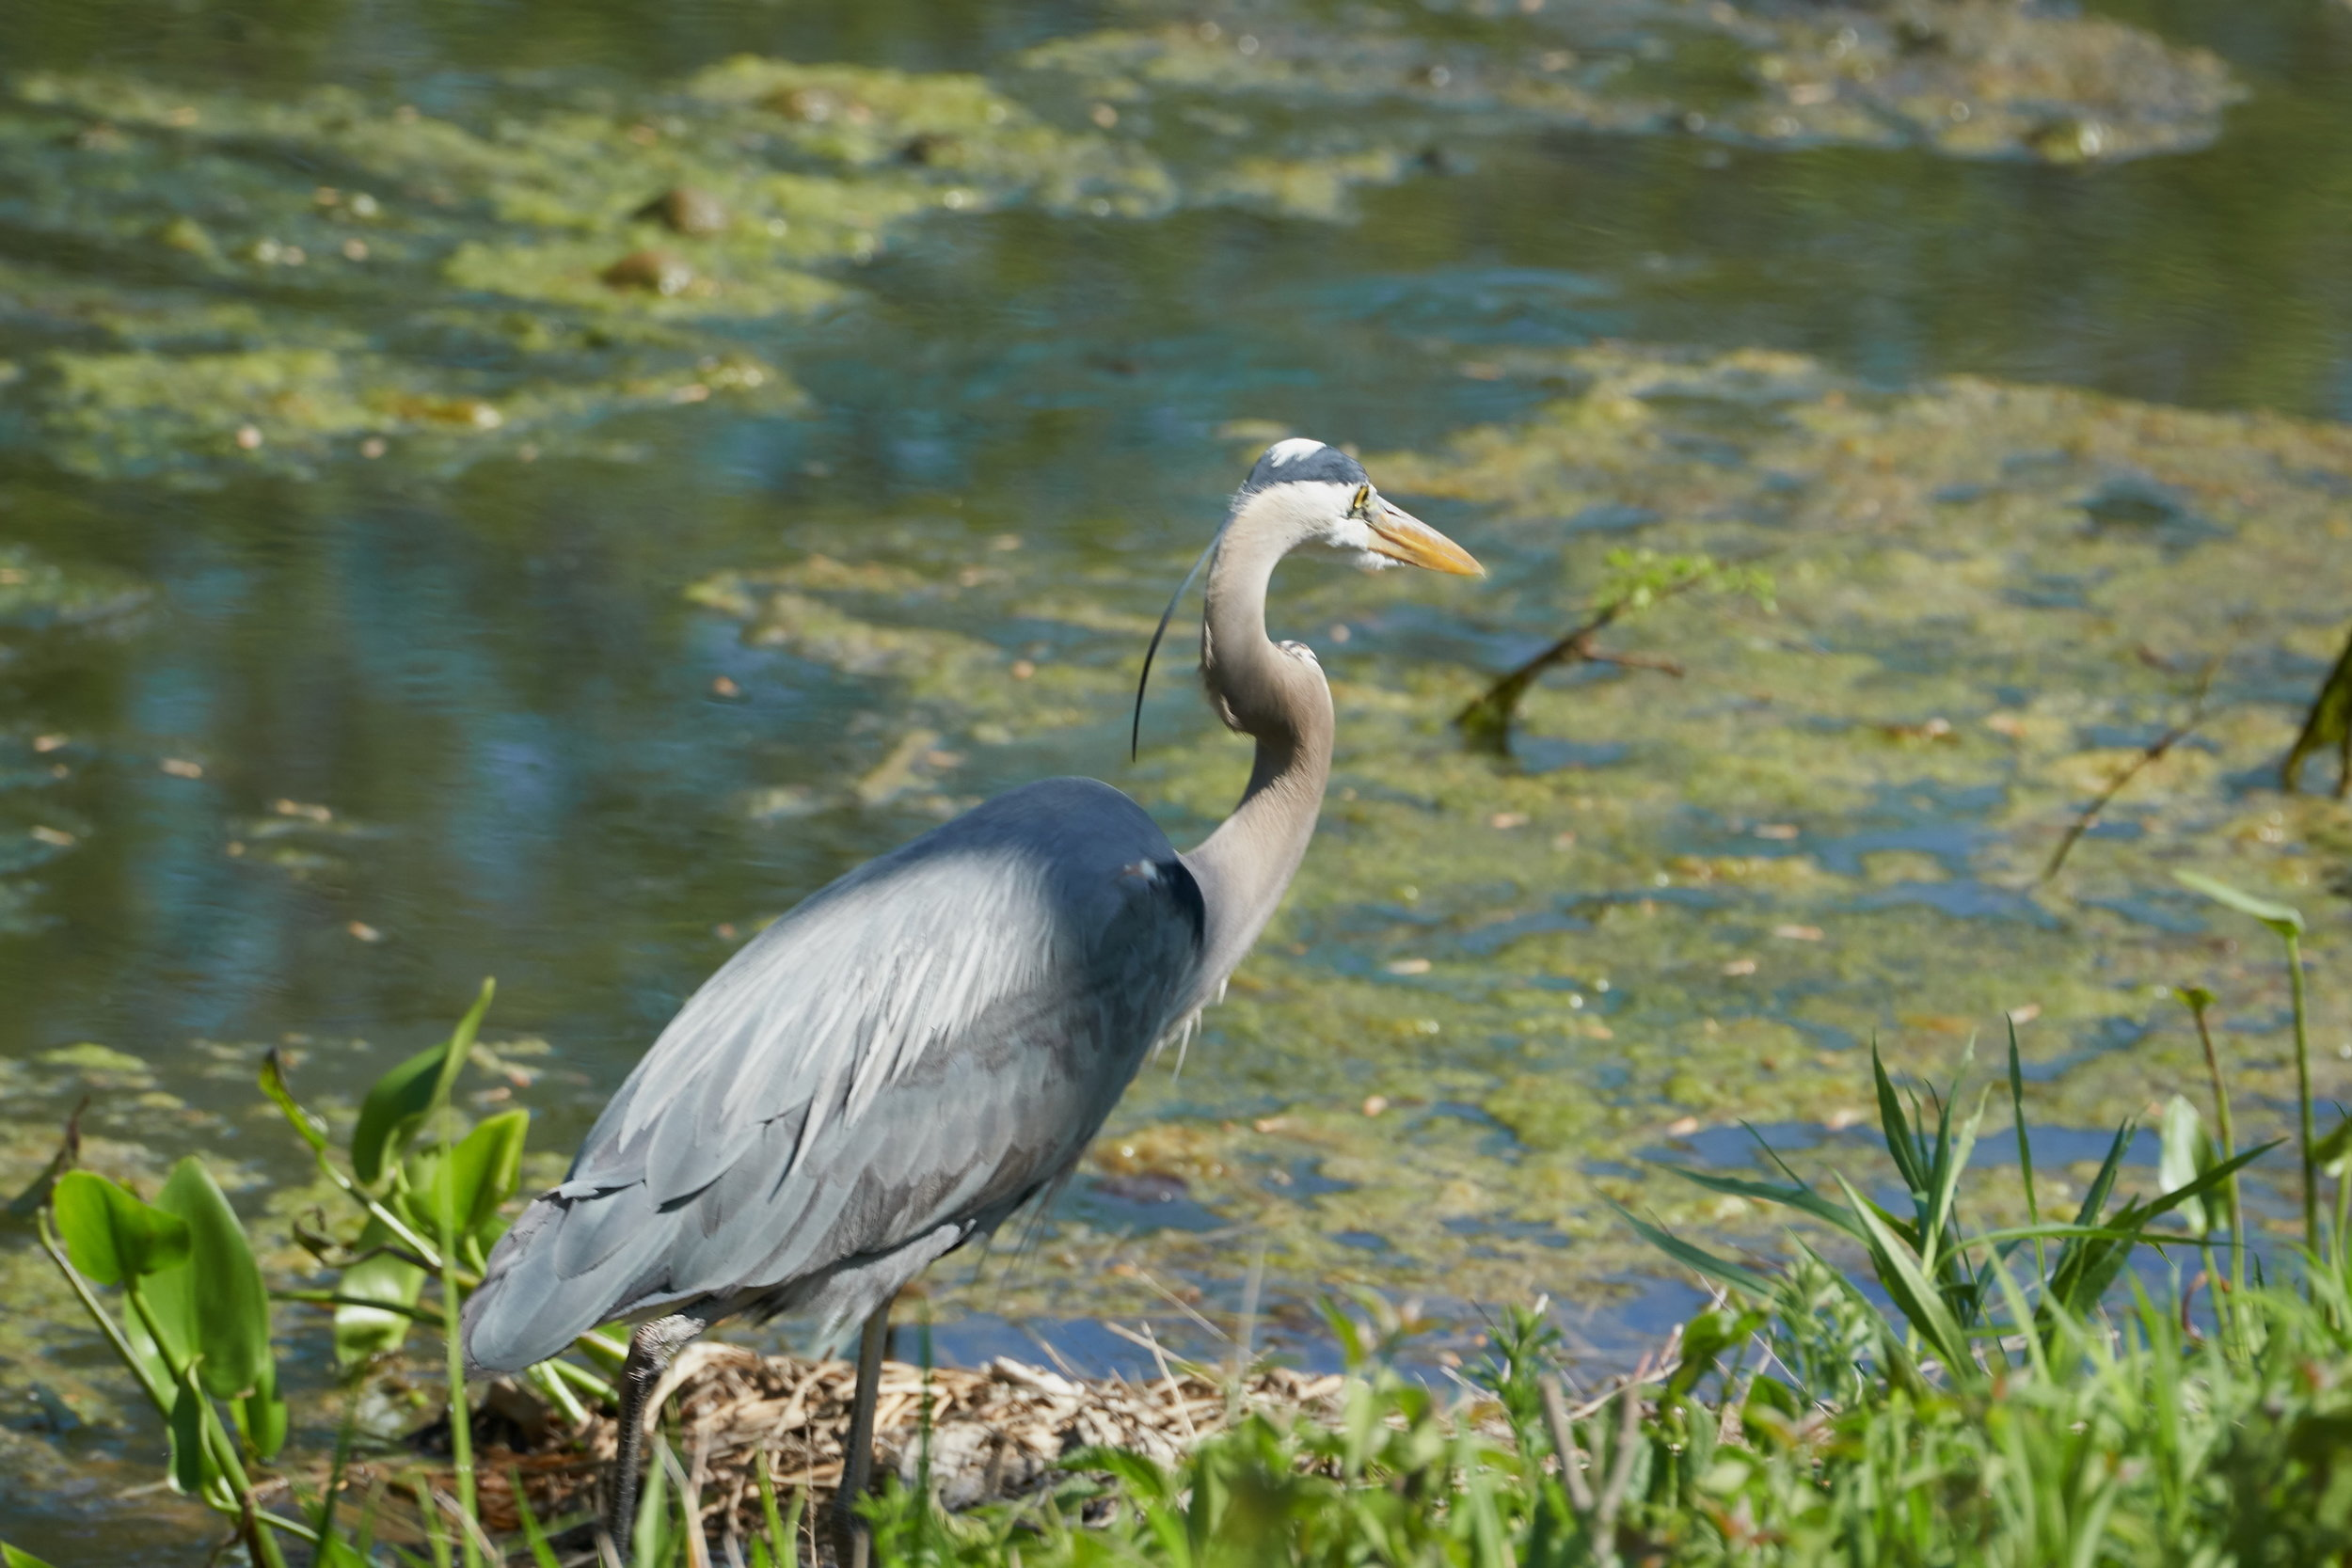 Great blue heron 4 May 09 2018_resize.jpg